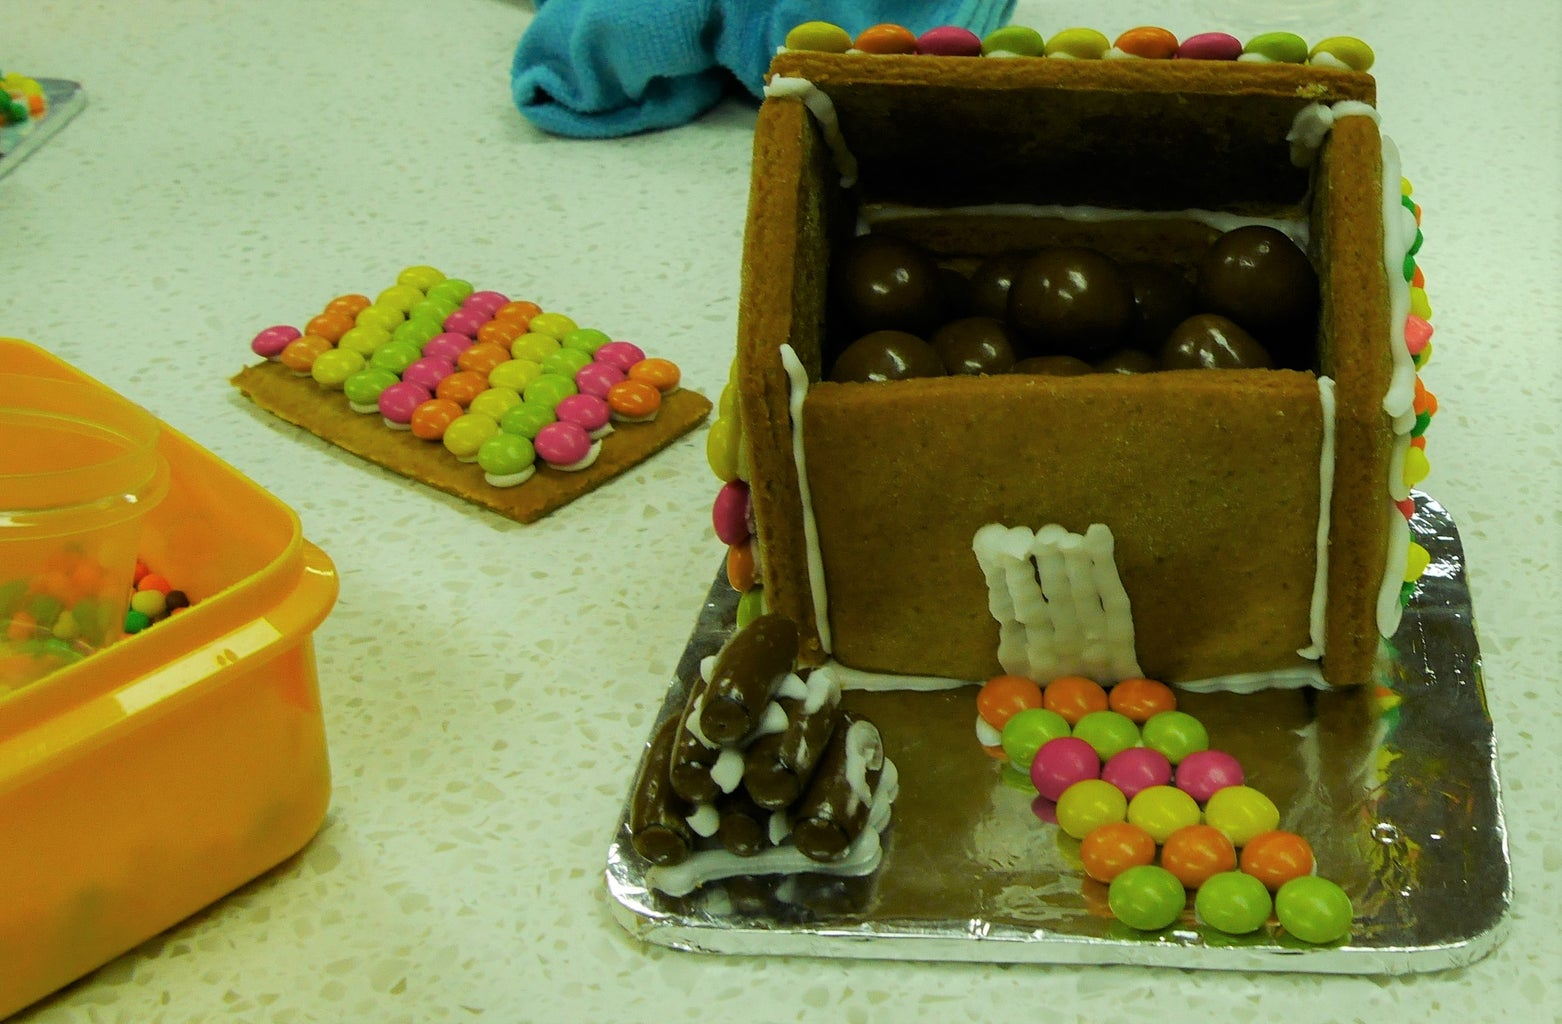 Step 8: Decorating and Completing Your Gingerbread House